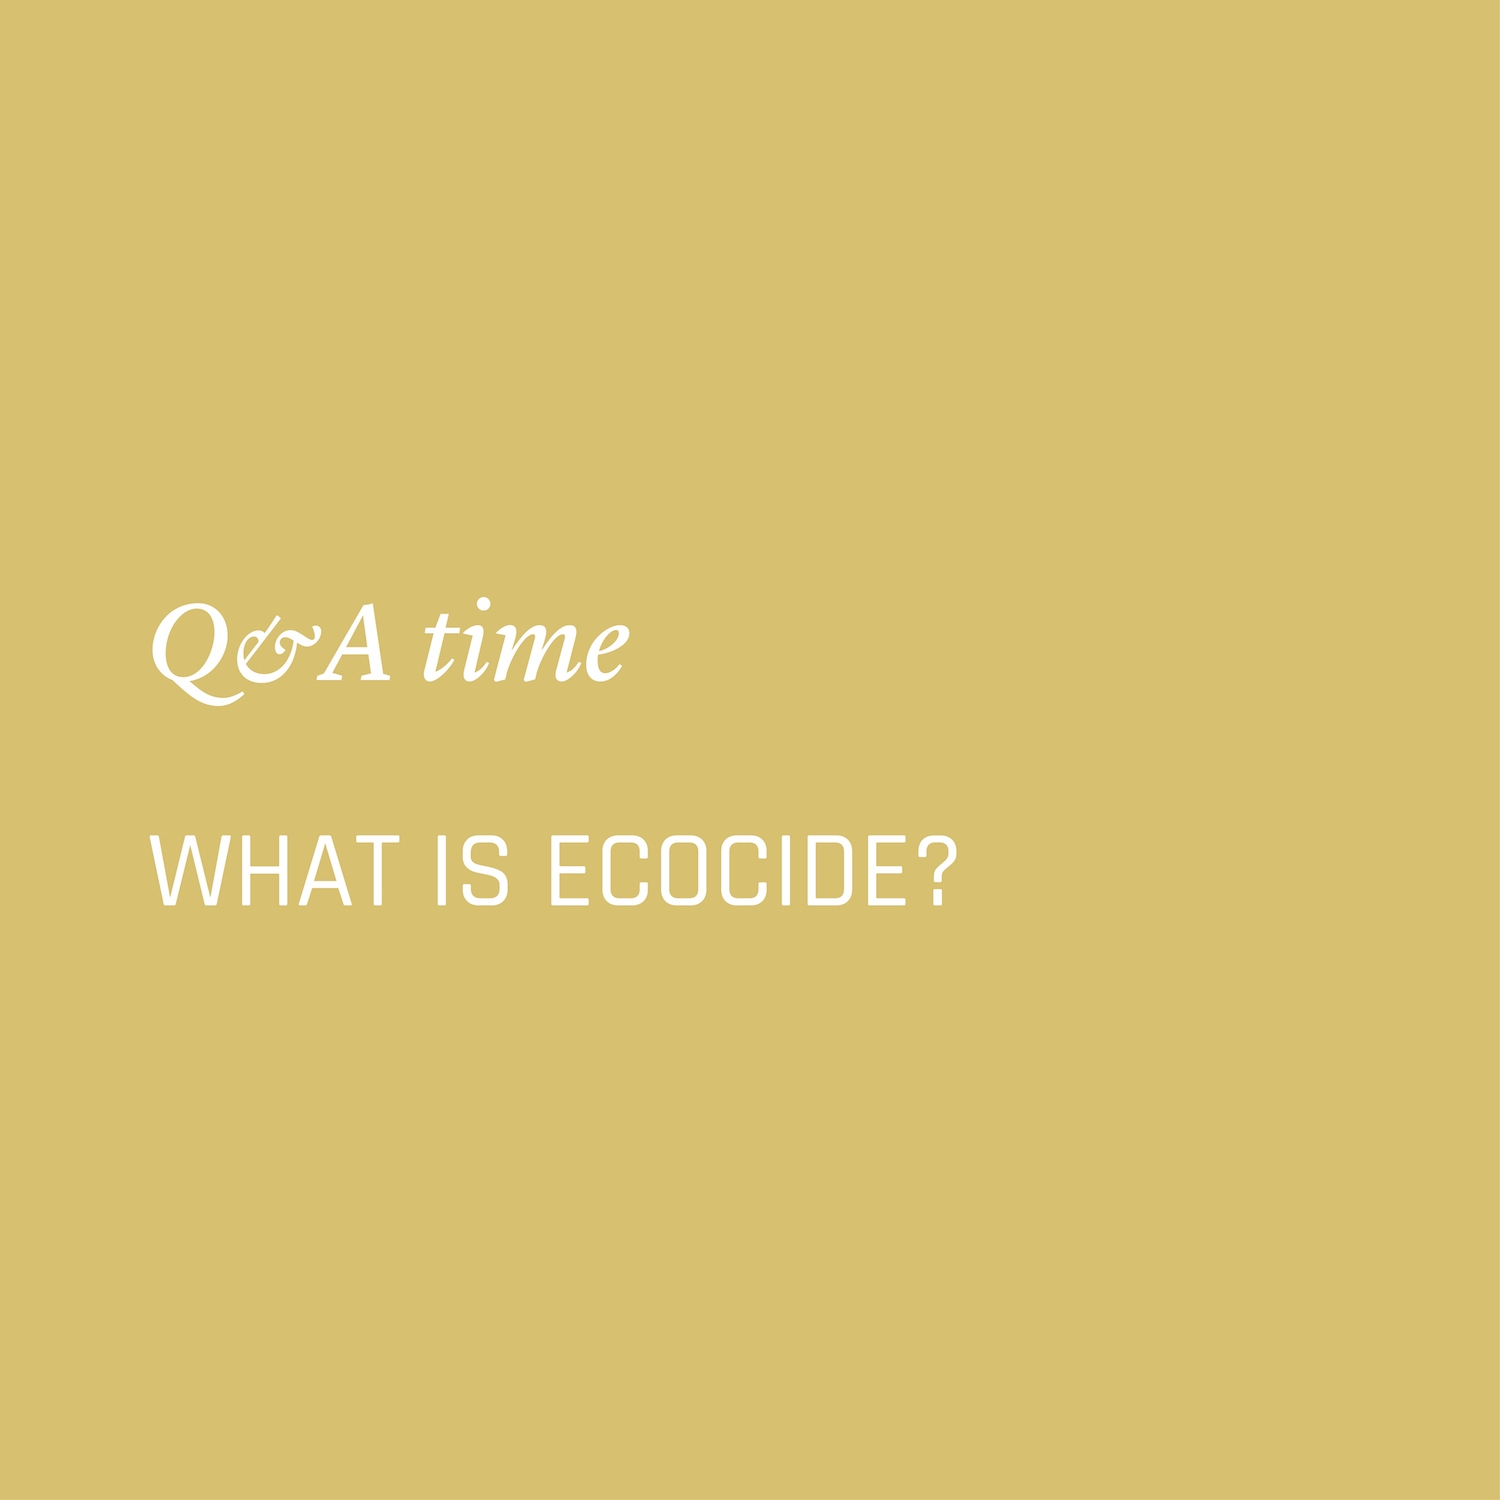 What is ecocide? Environment Environmental Questions FAQs Frequently Asked Questions Climate Change Plastics Oceans Animals Nowhere & Everywhere